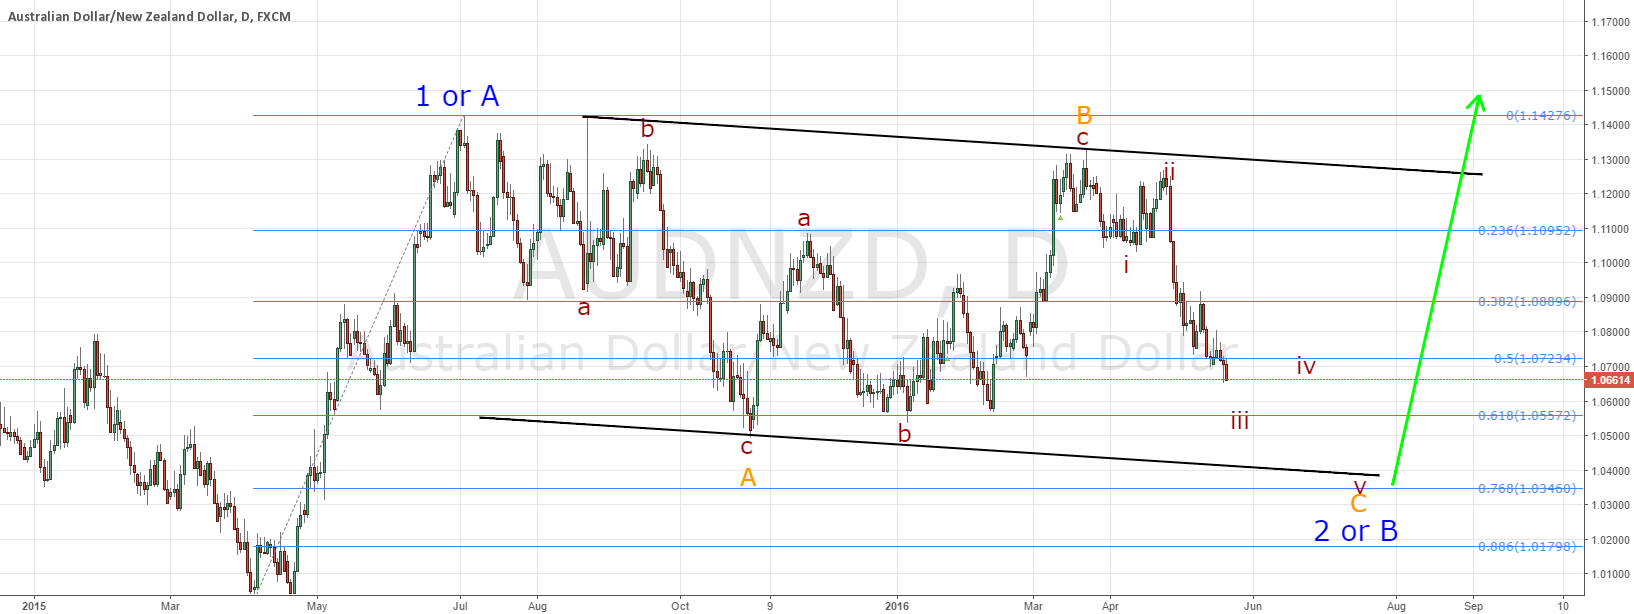 AUDNZD lots of opportunities